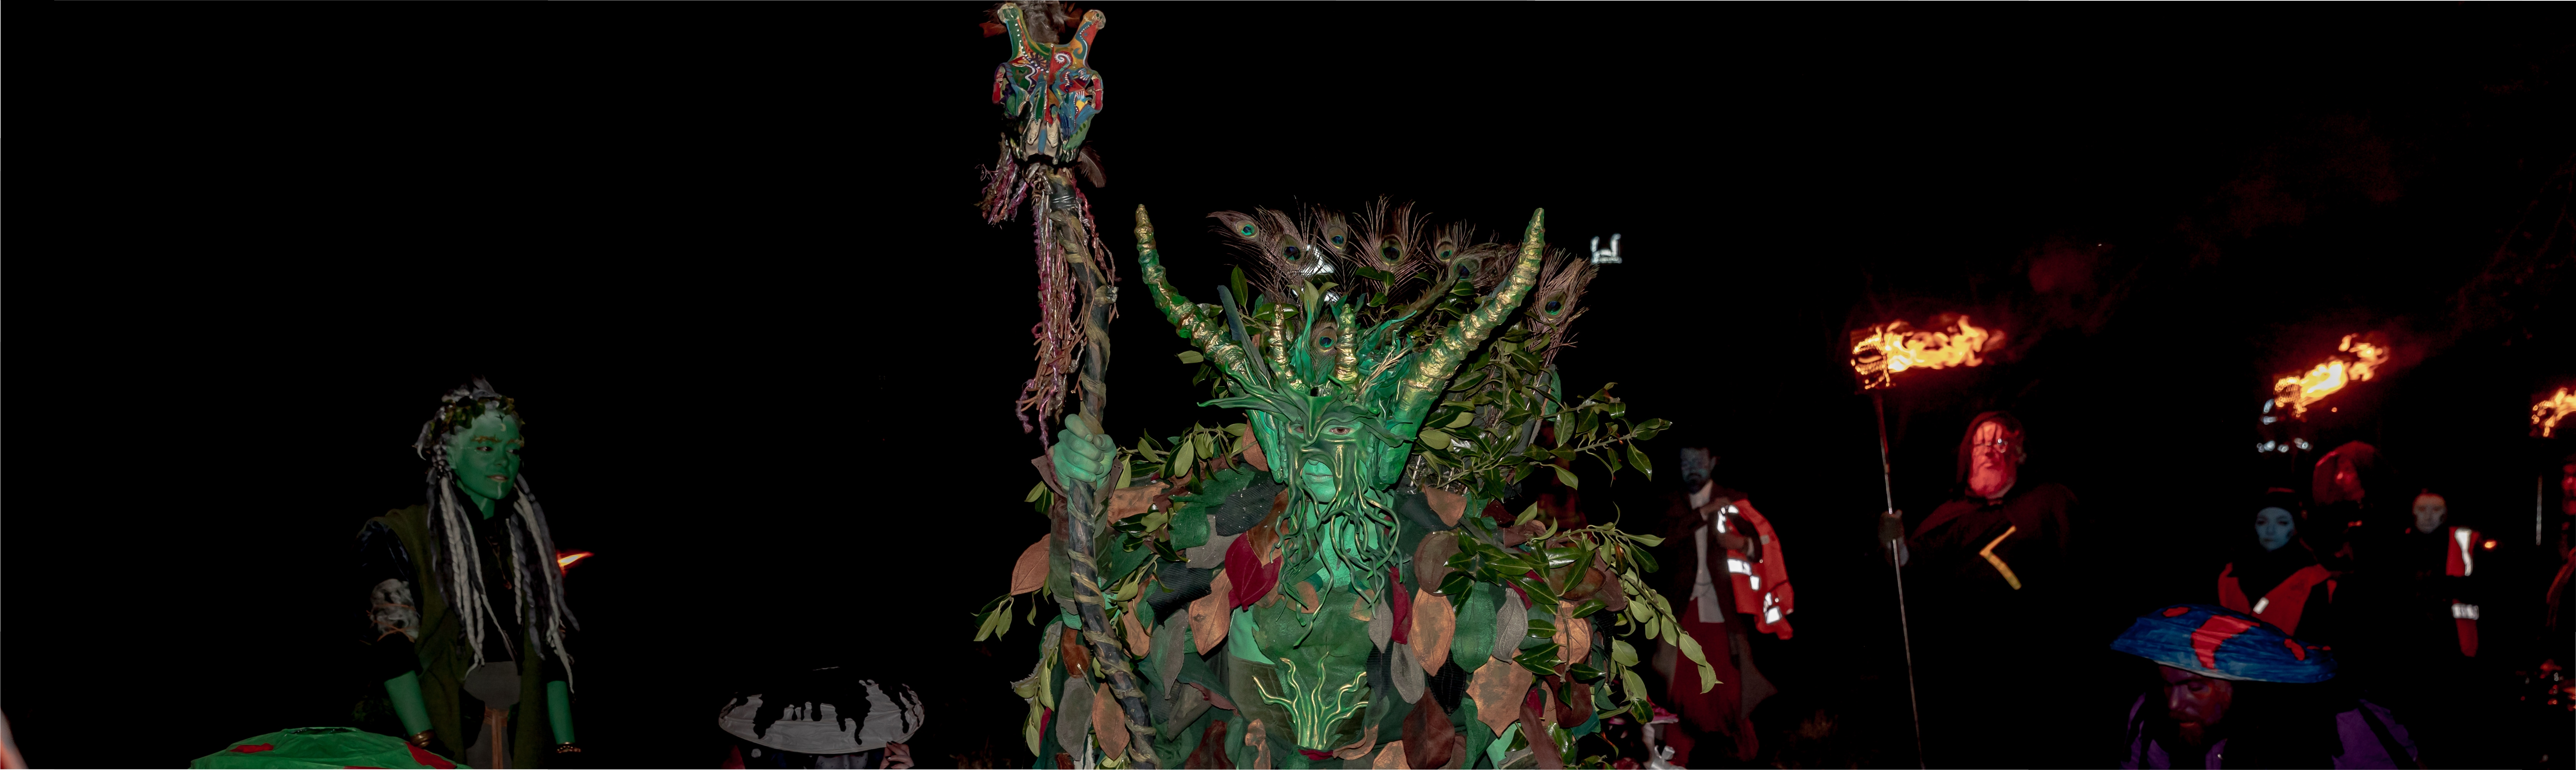 Calling our Green Man for Beltane 2019